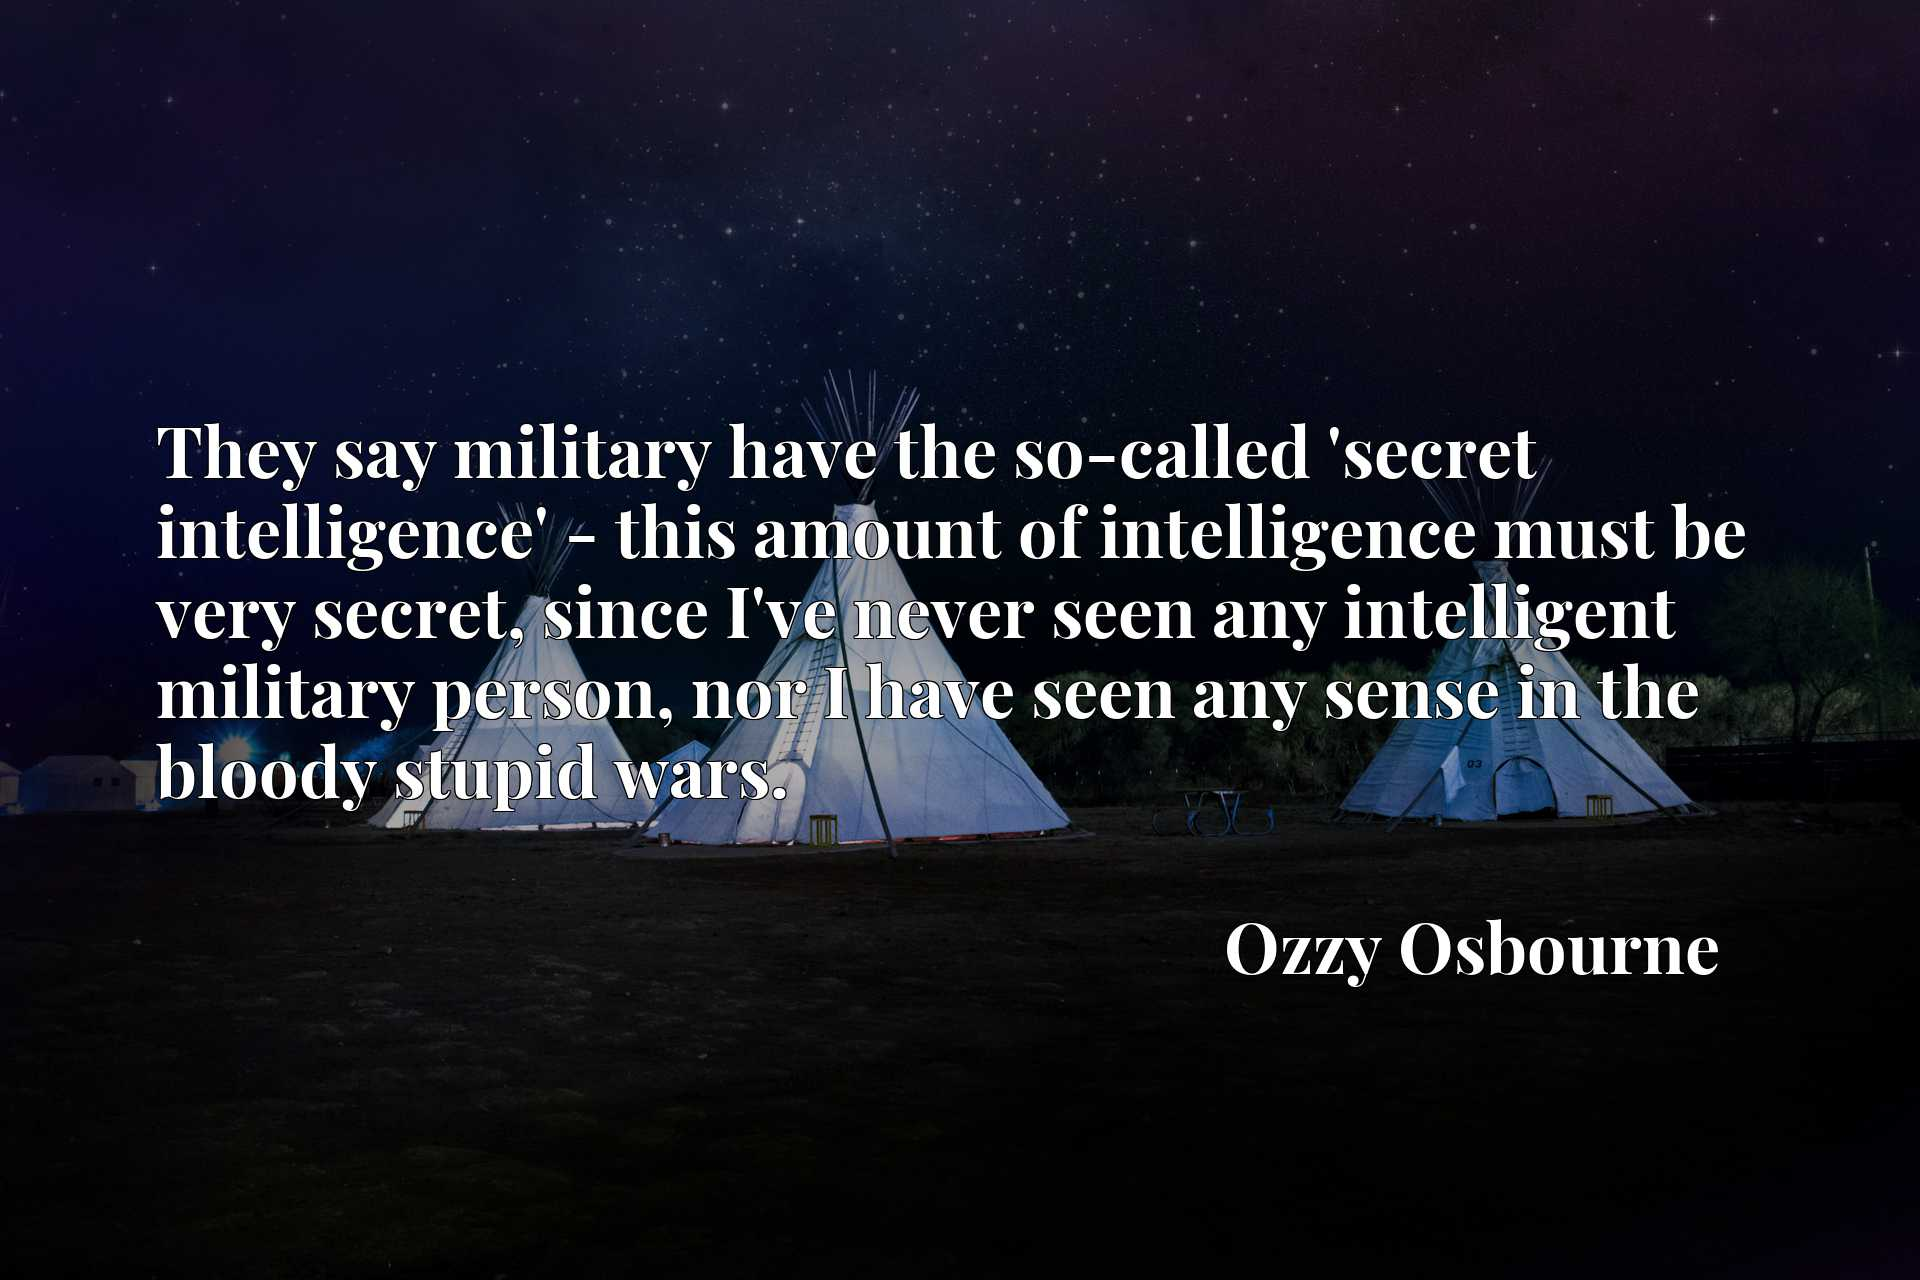 They say military have the so-called 'secret intelligence' - this amount of intelligence must be very secret, since I've never seen any intelligent military person, nor I have seen any sense in the bloody stupid wars.